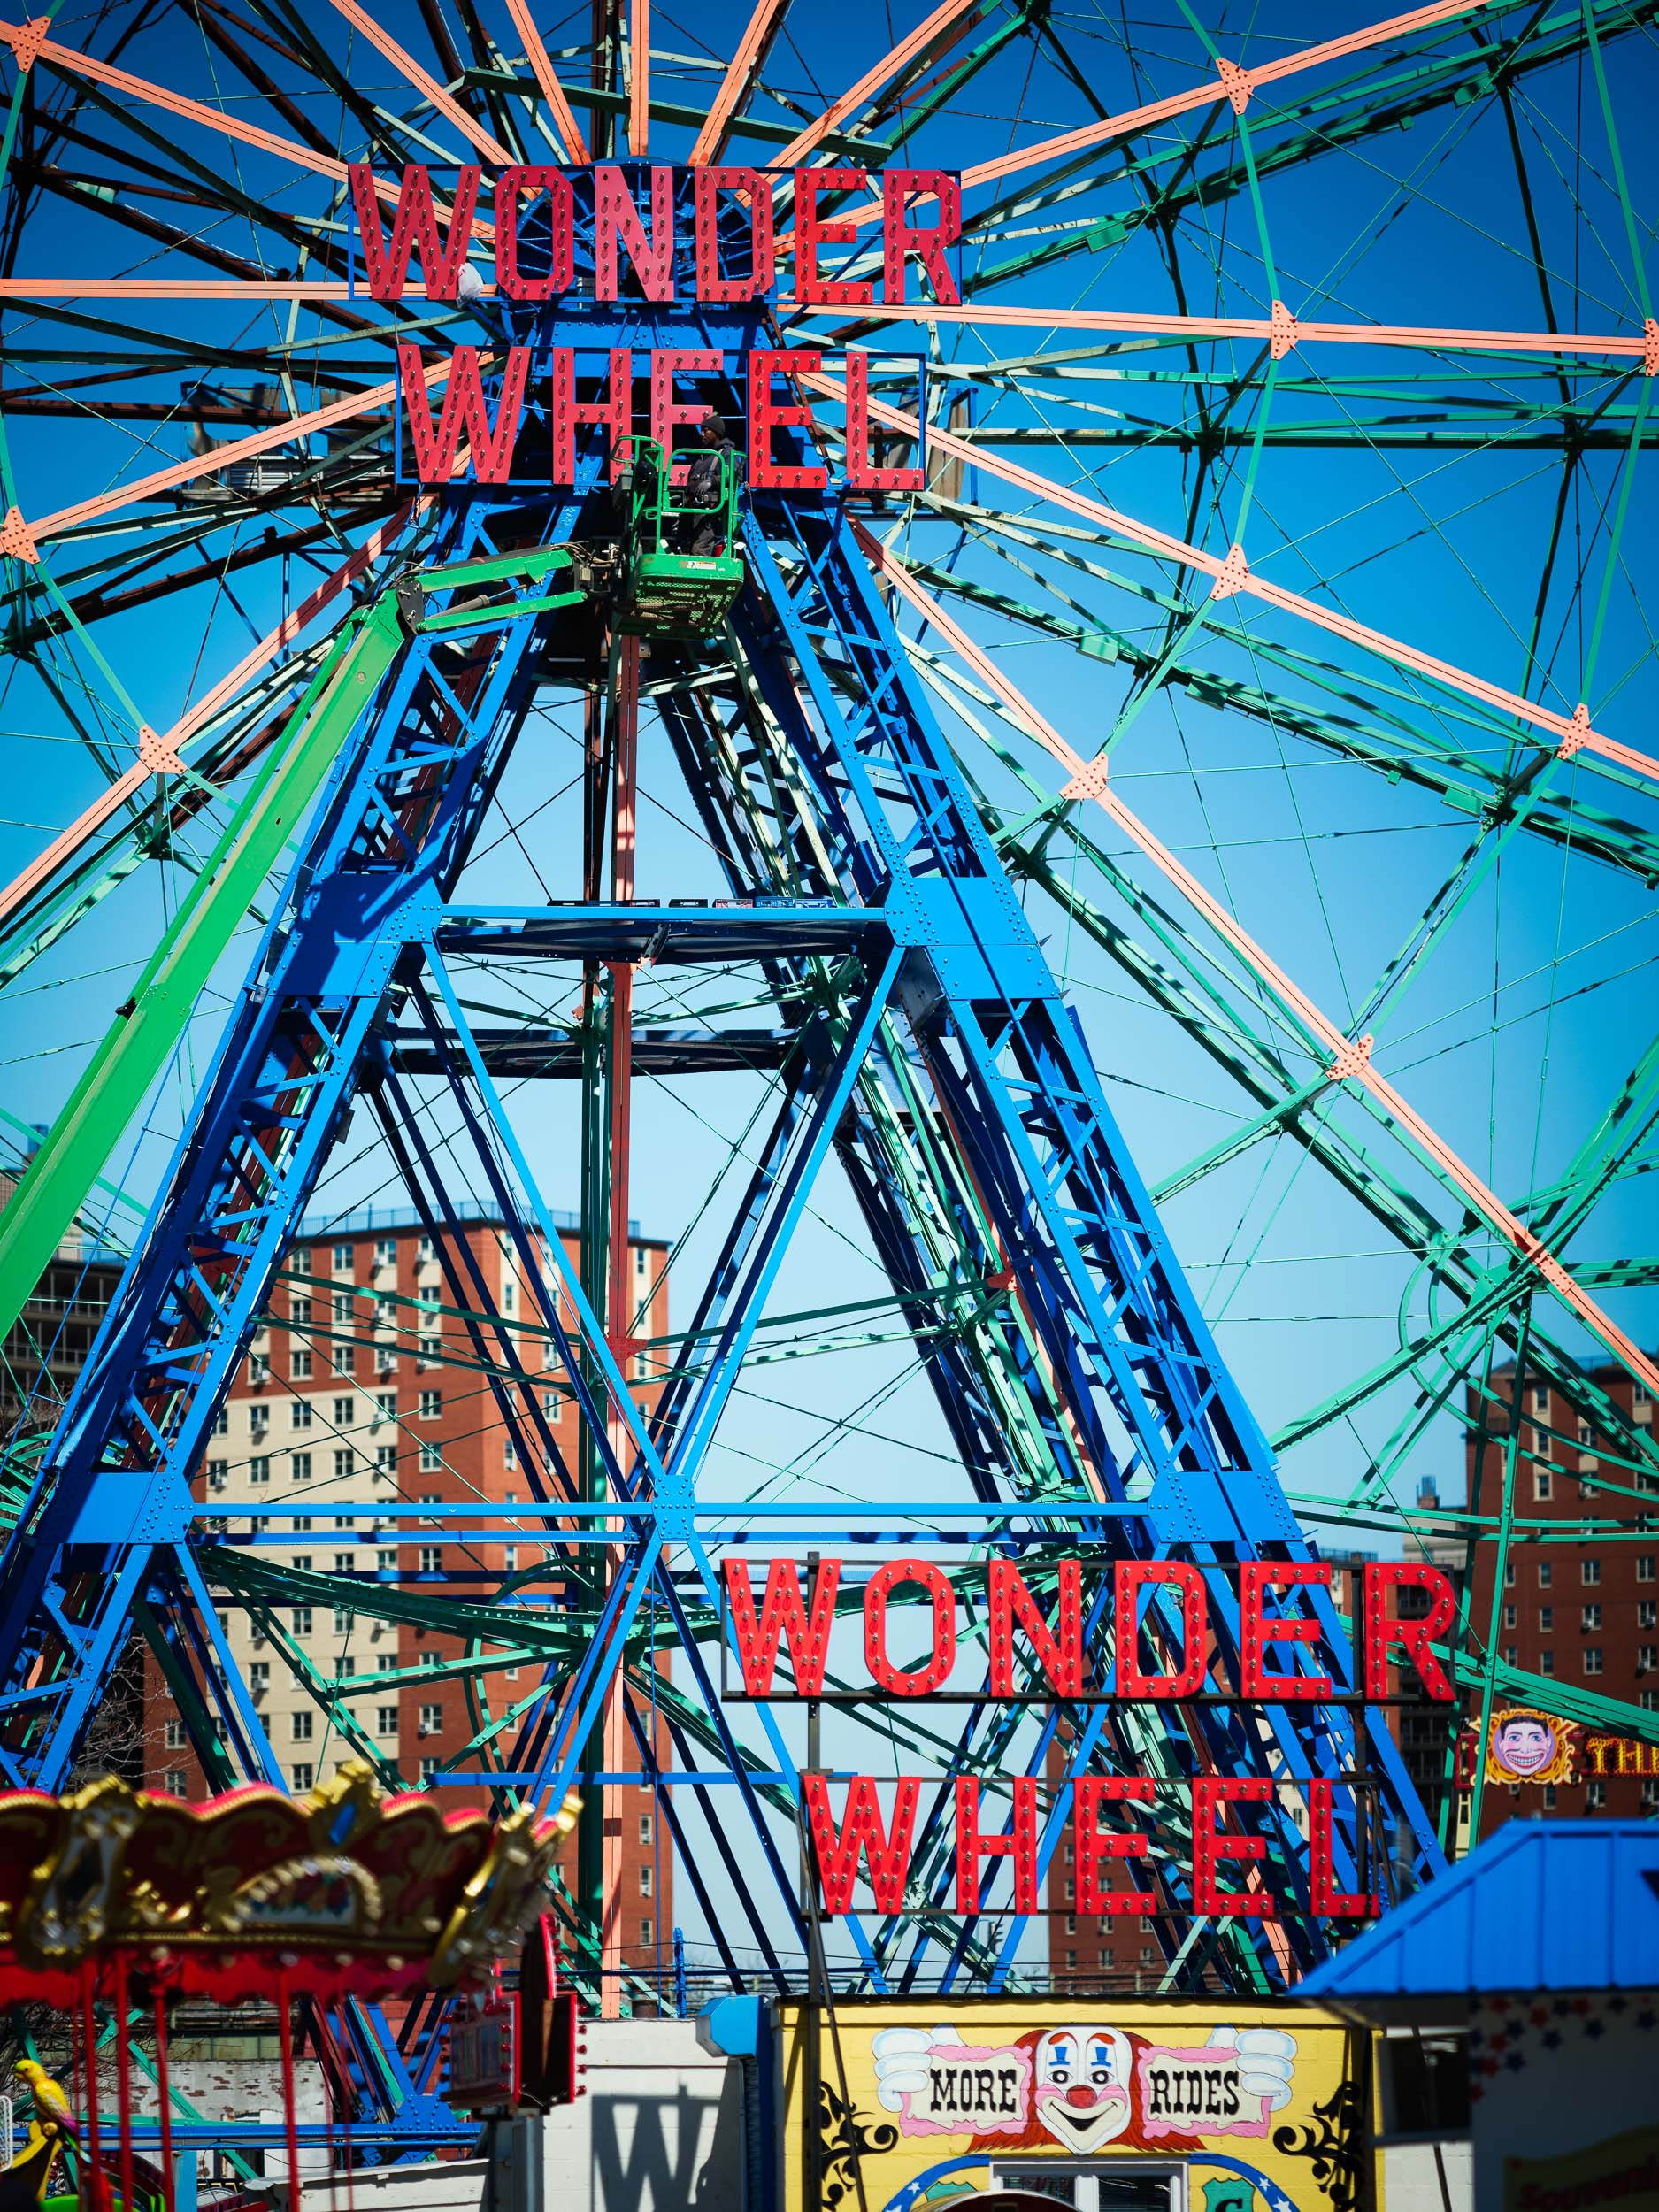 The Wonder Wheel was built in 1918 and opened in 1920